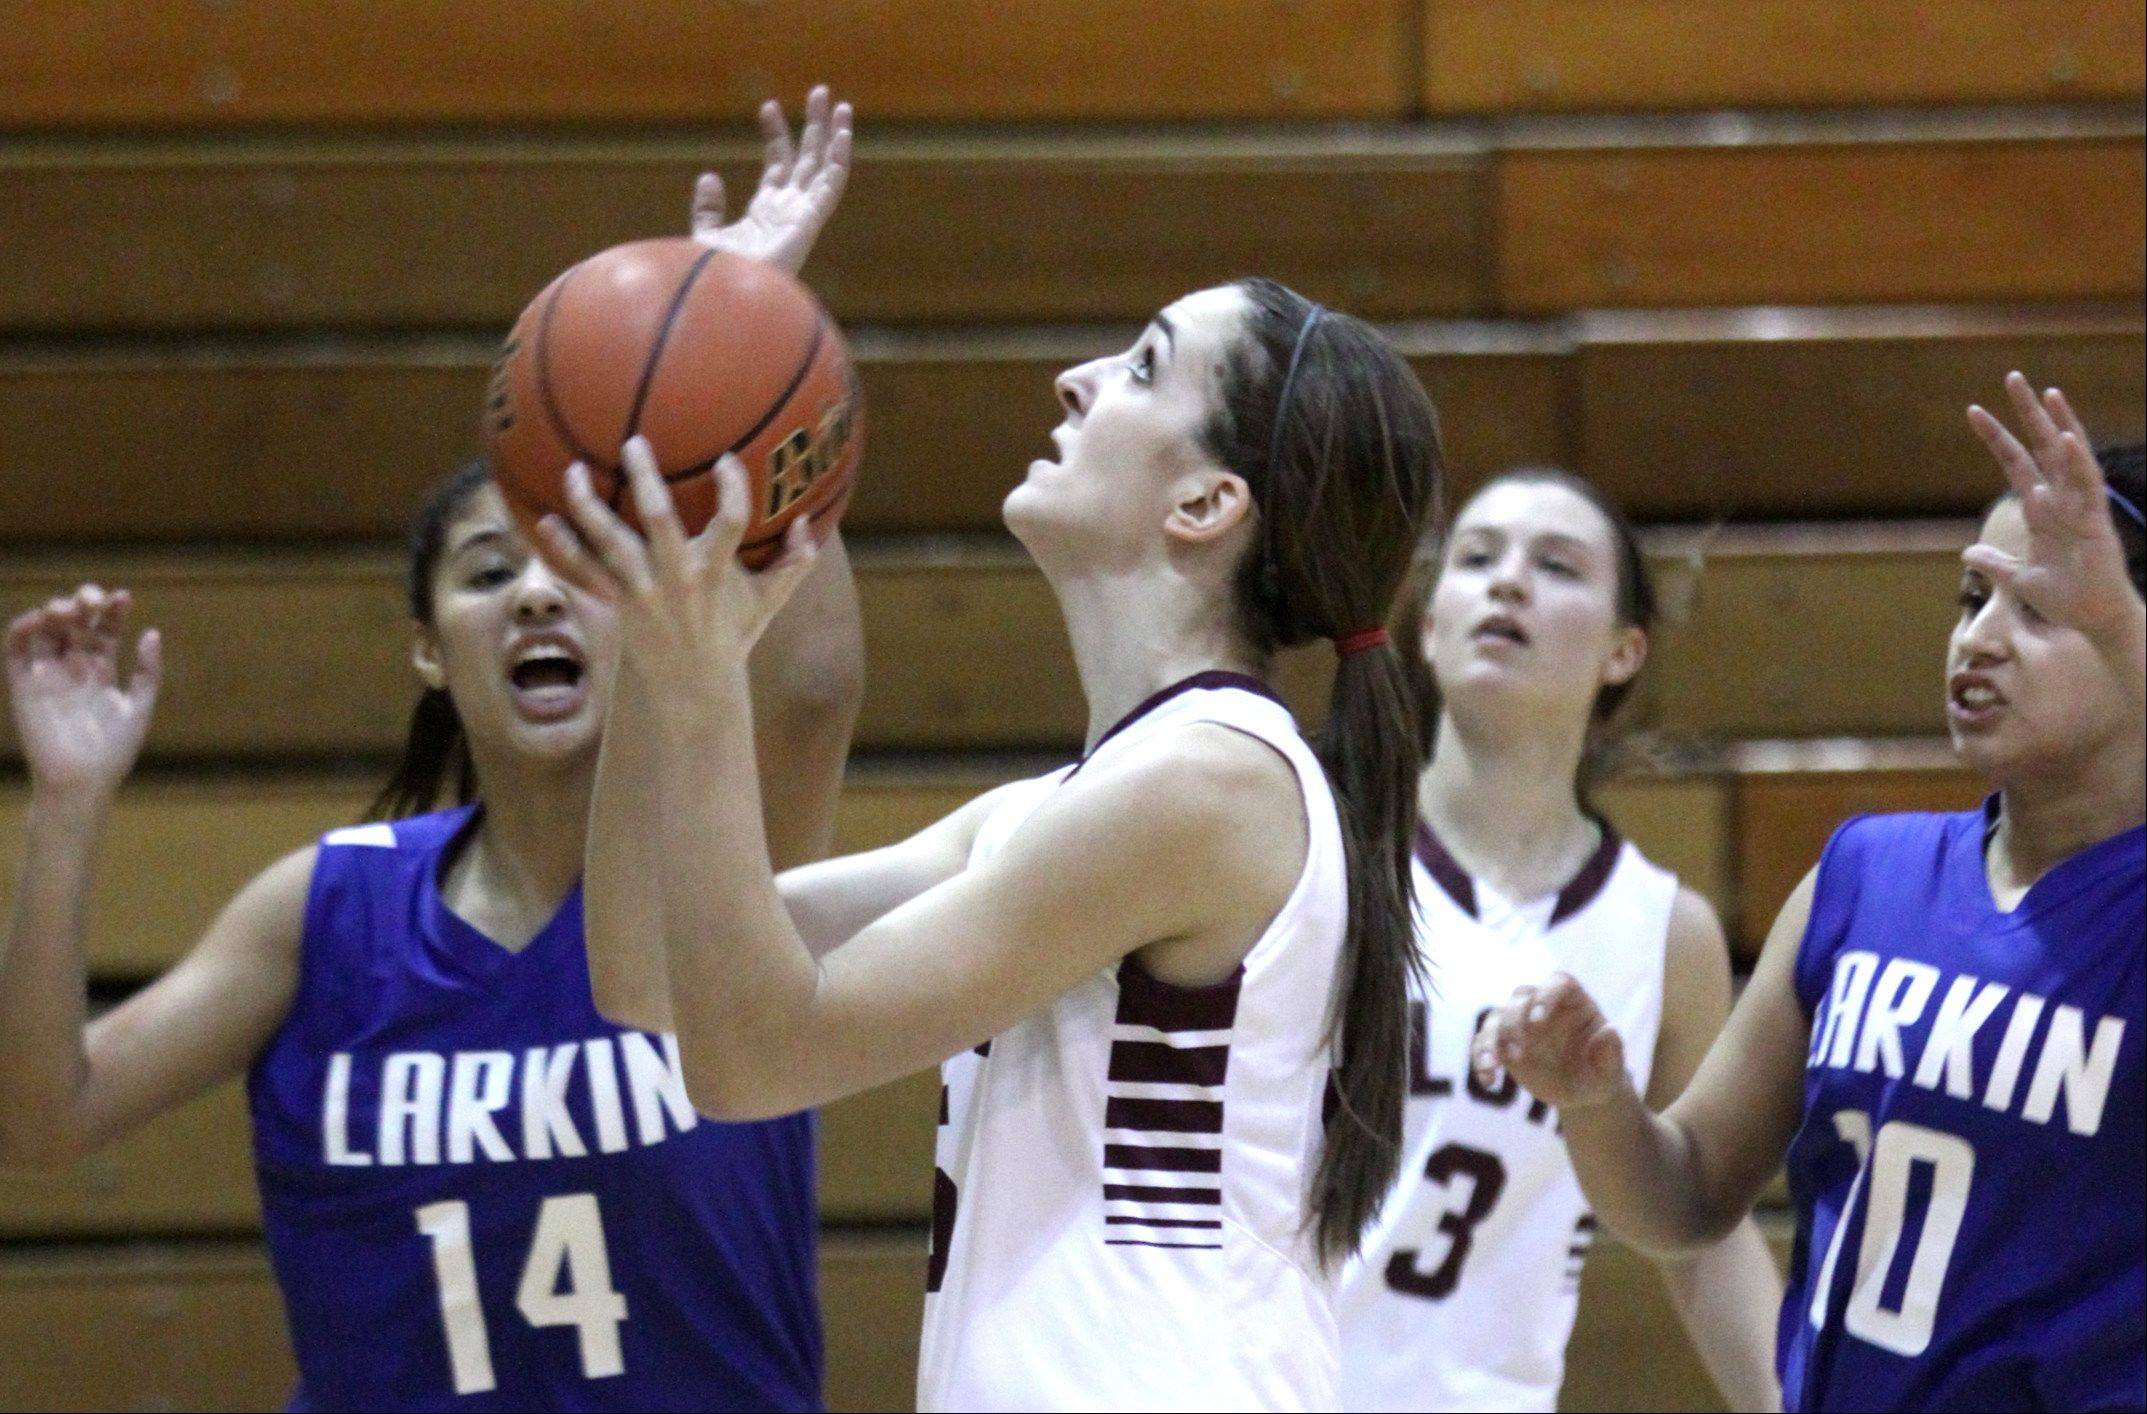 Elgin's Tamara Milosevic, center, takes a shot against Larkin.